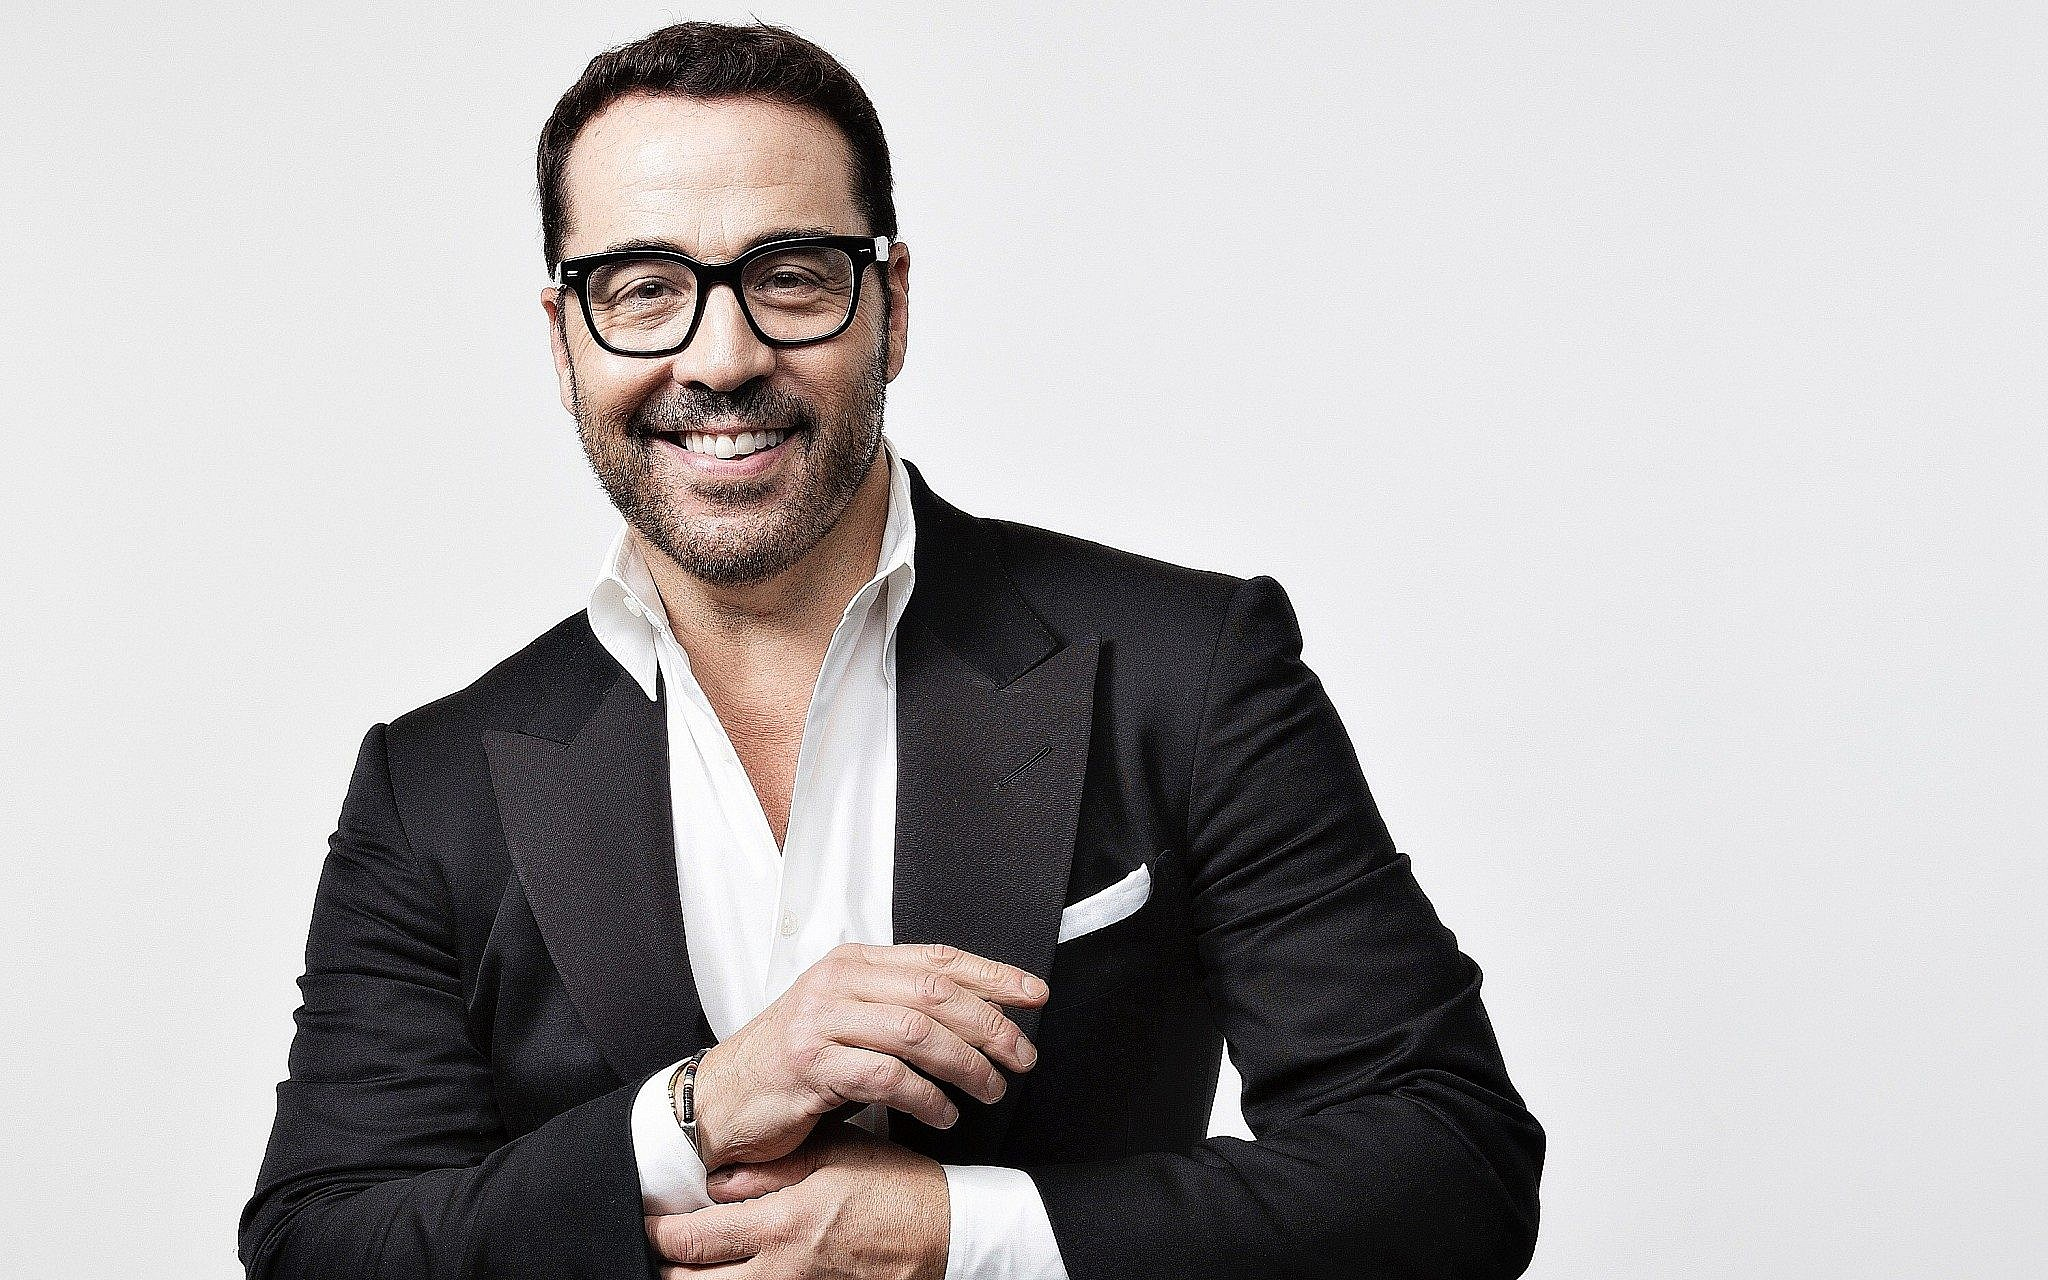 f5de1952cf585 Emmy Award-winning actor Jeremy Piven tries stand-up